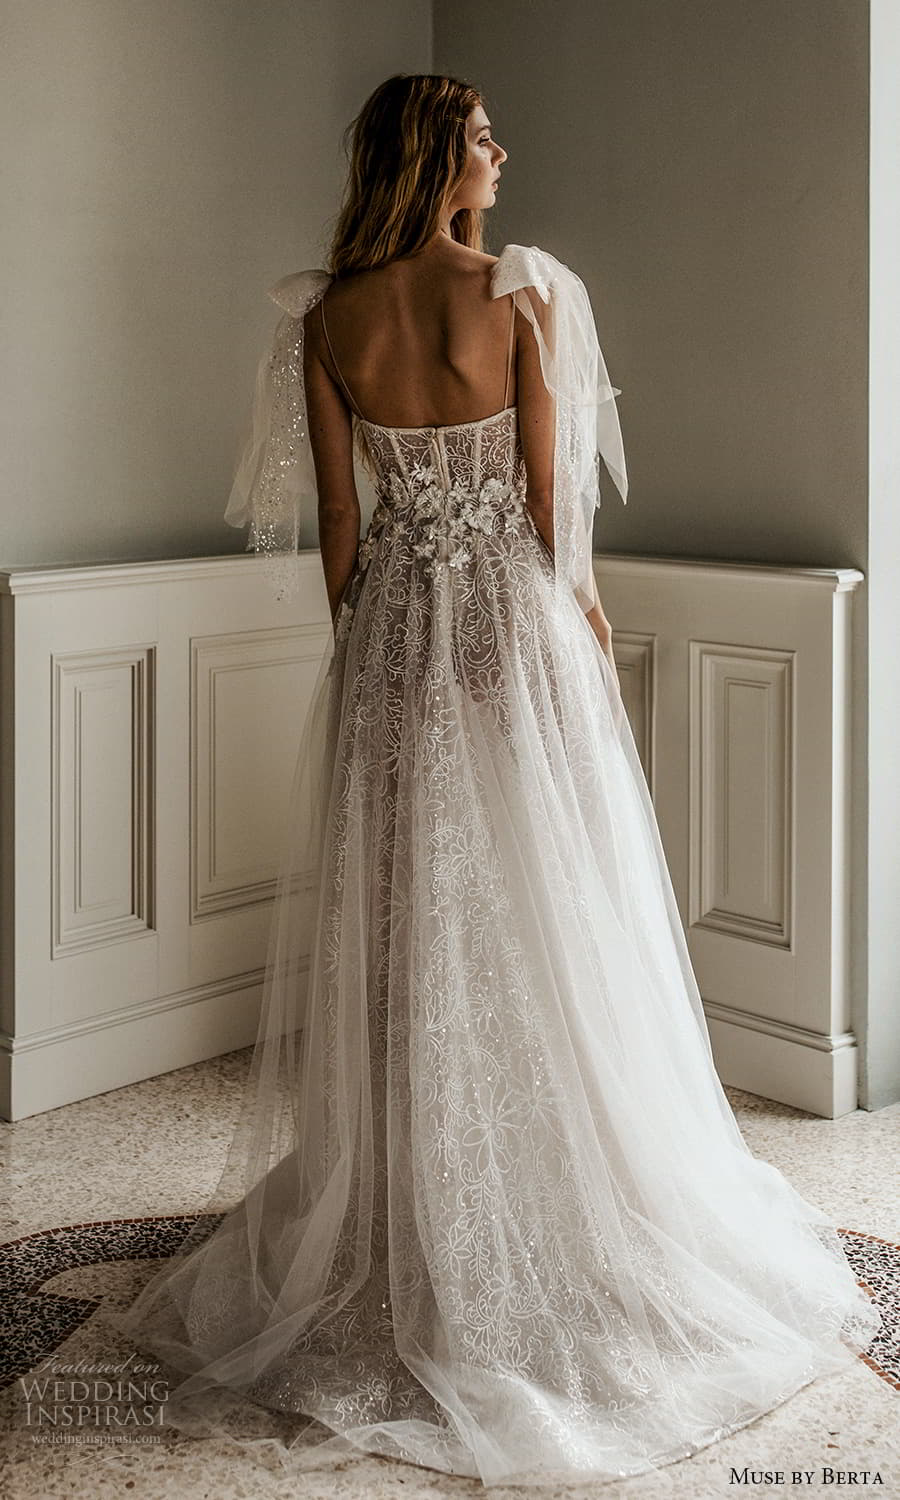 muse by berta spring 2022 bridal sleeveless thin straps semi sweetheart neckline fully embellished a line ball gown wedding dress chapel train (1) bv